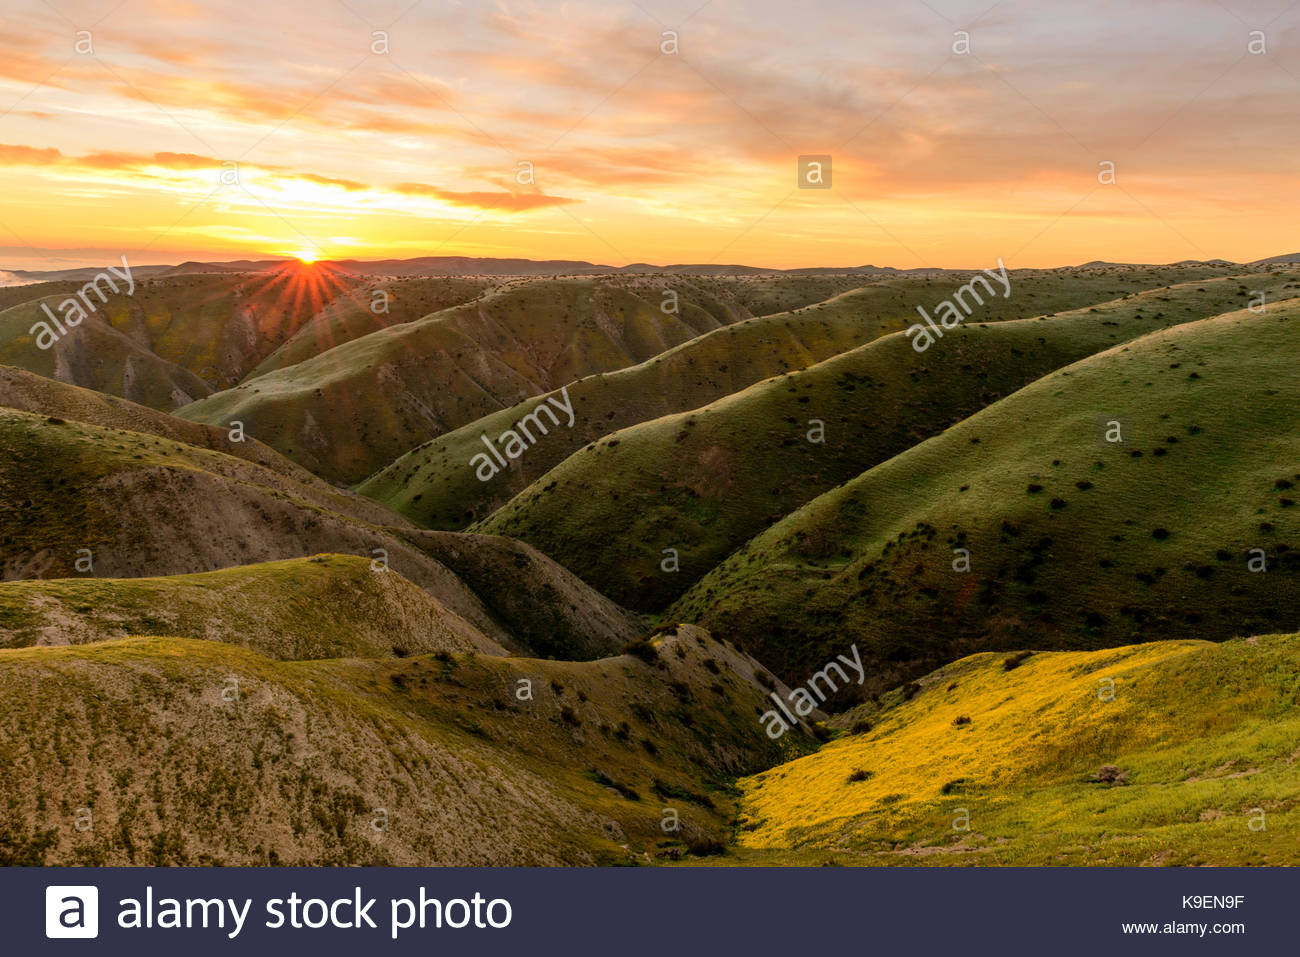 Panoche Hills Wilderness Study Area at Dawn, Fresno County, California - Stock Image